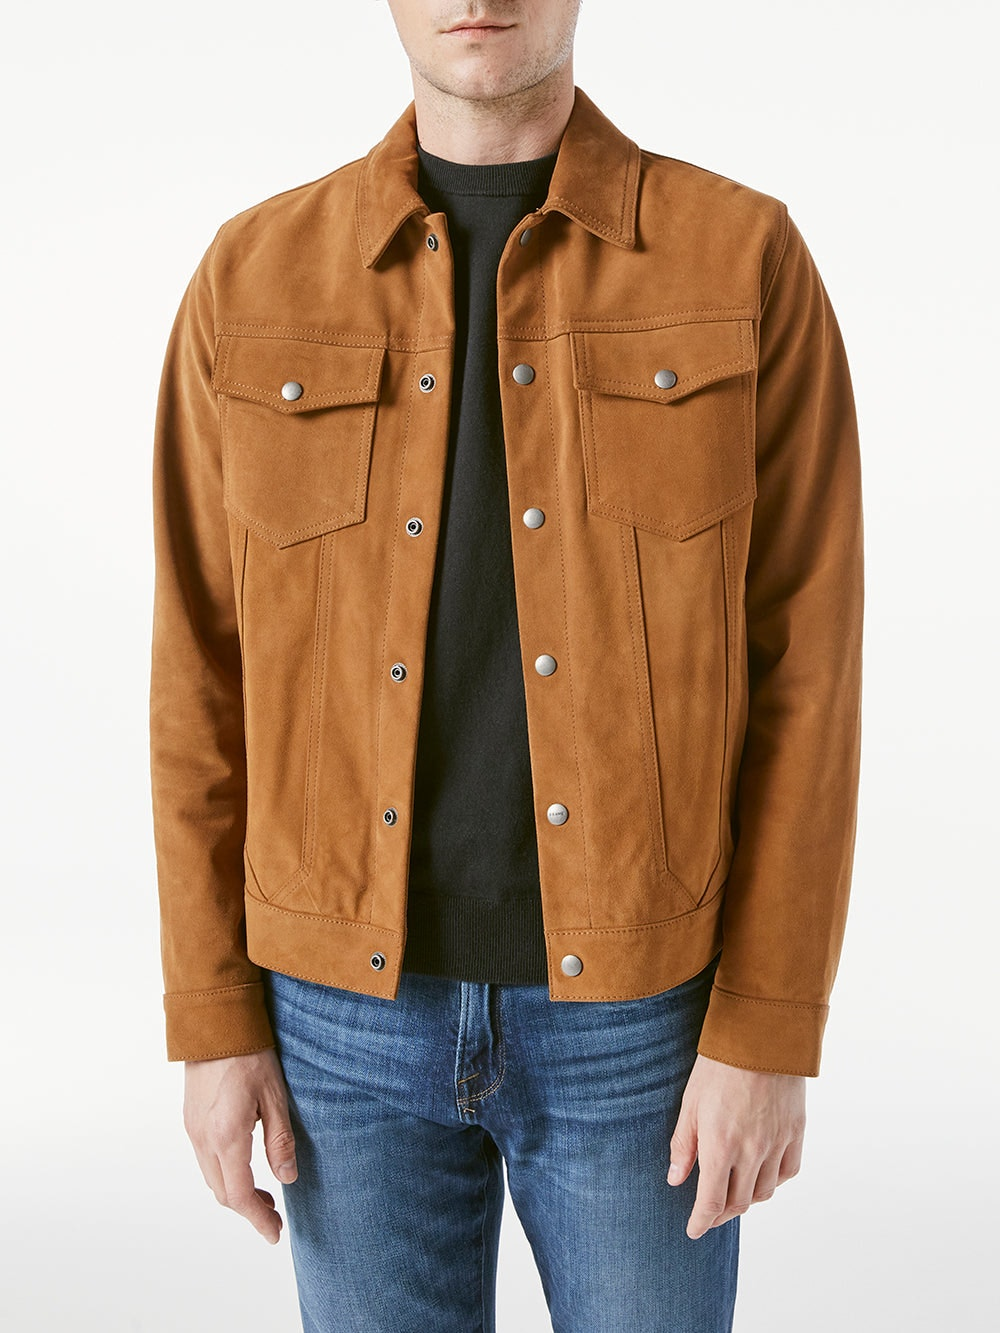 jacket front view